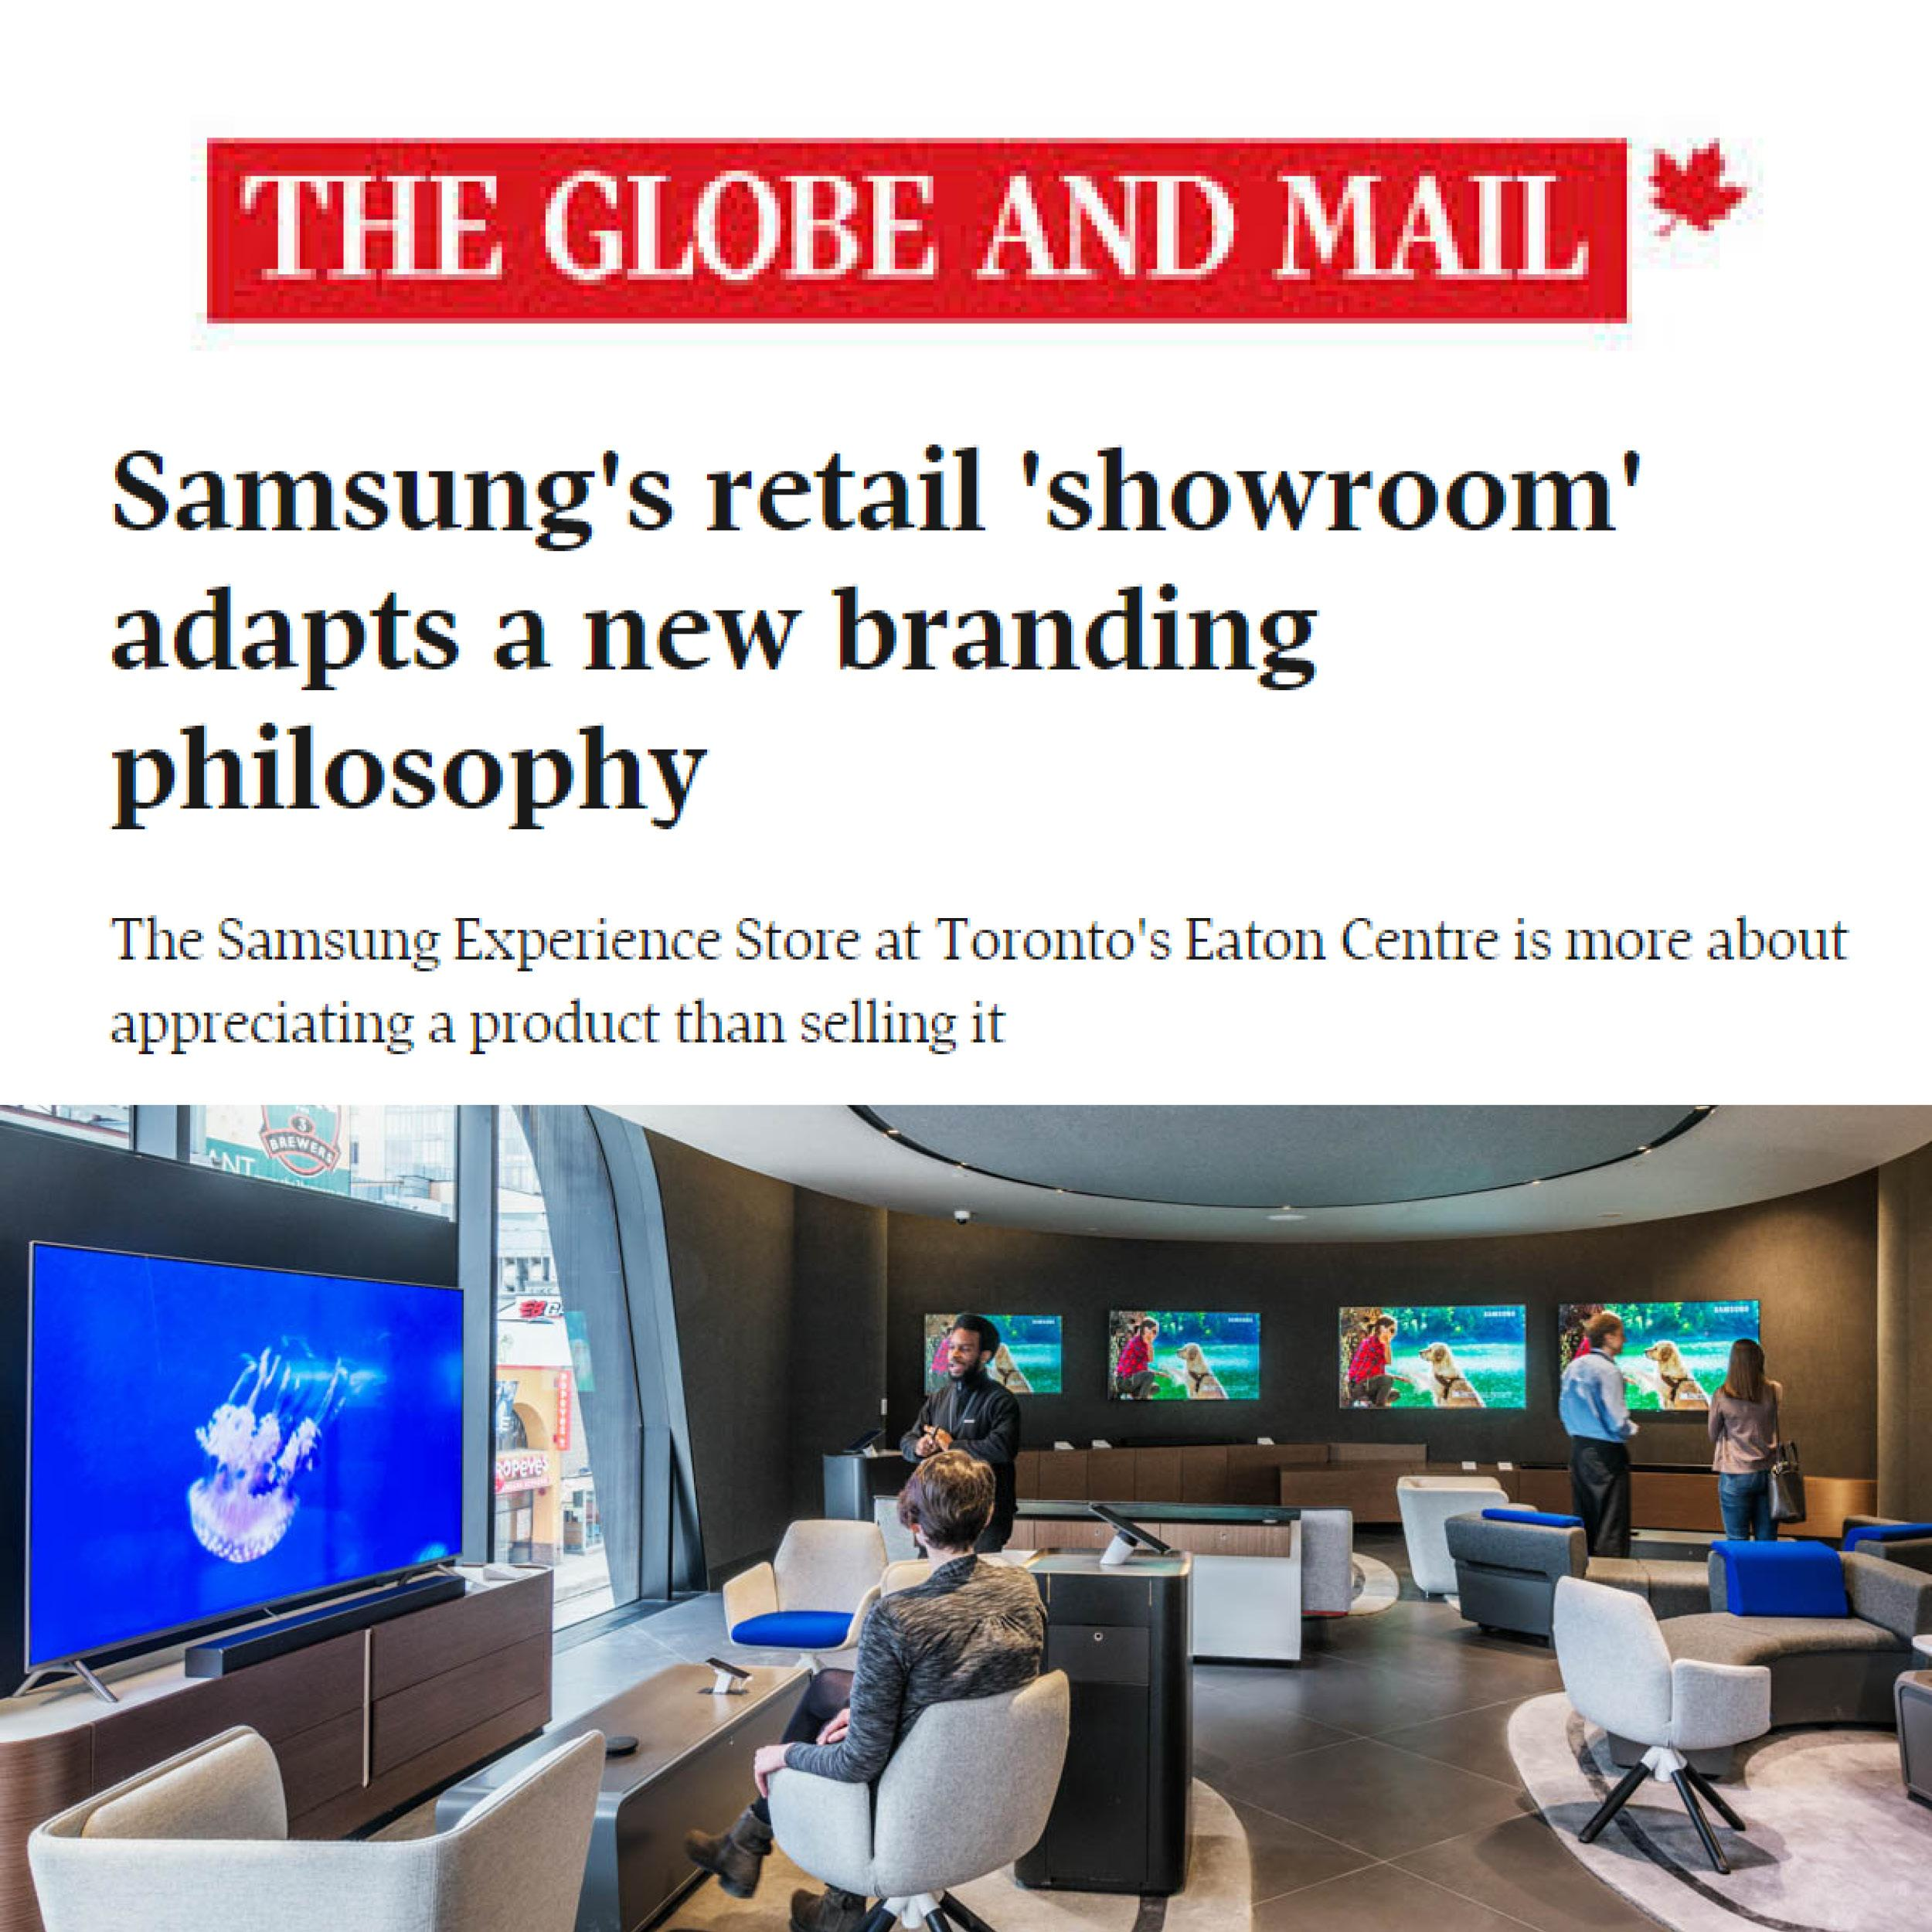 thumbnail showing Globe and Mail headline and photo of Samsung Experience Store in the Eaton Centre